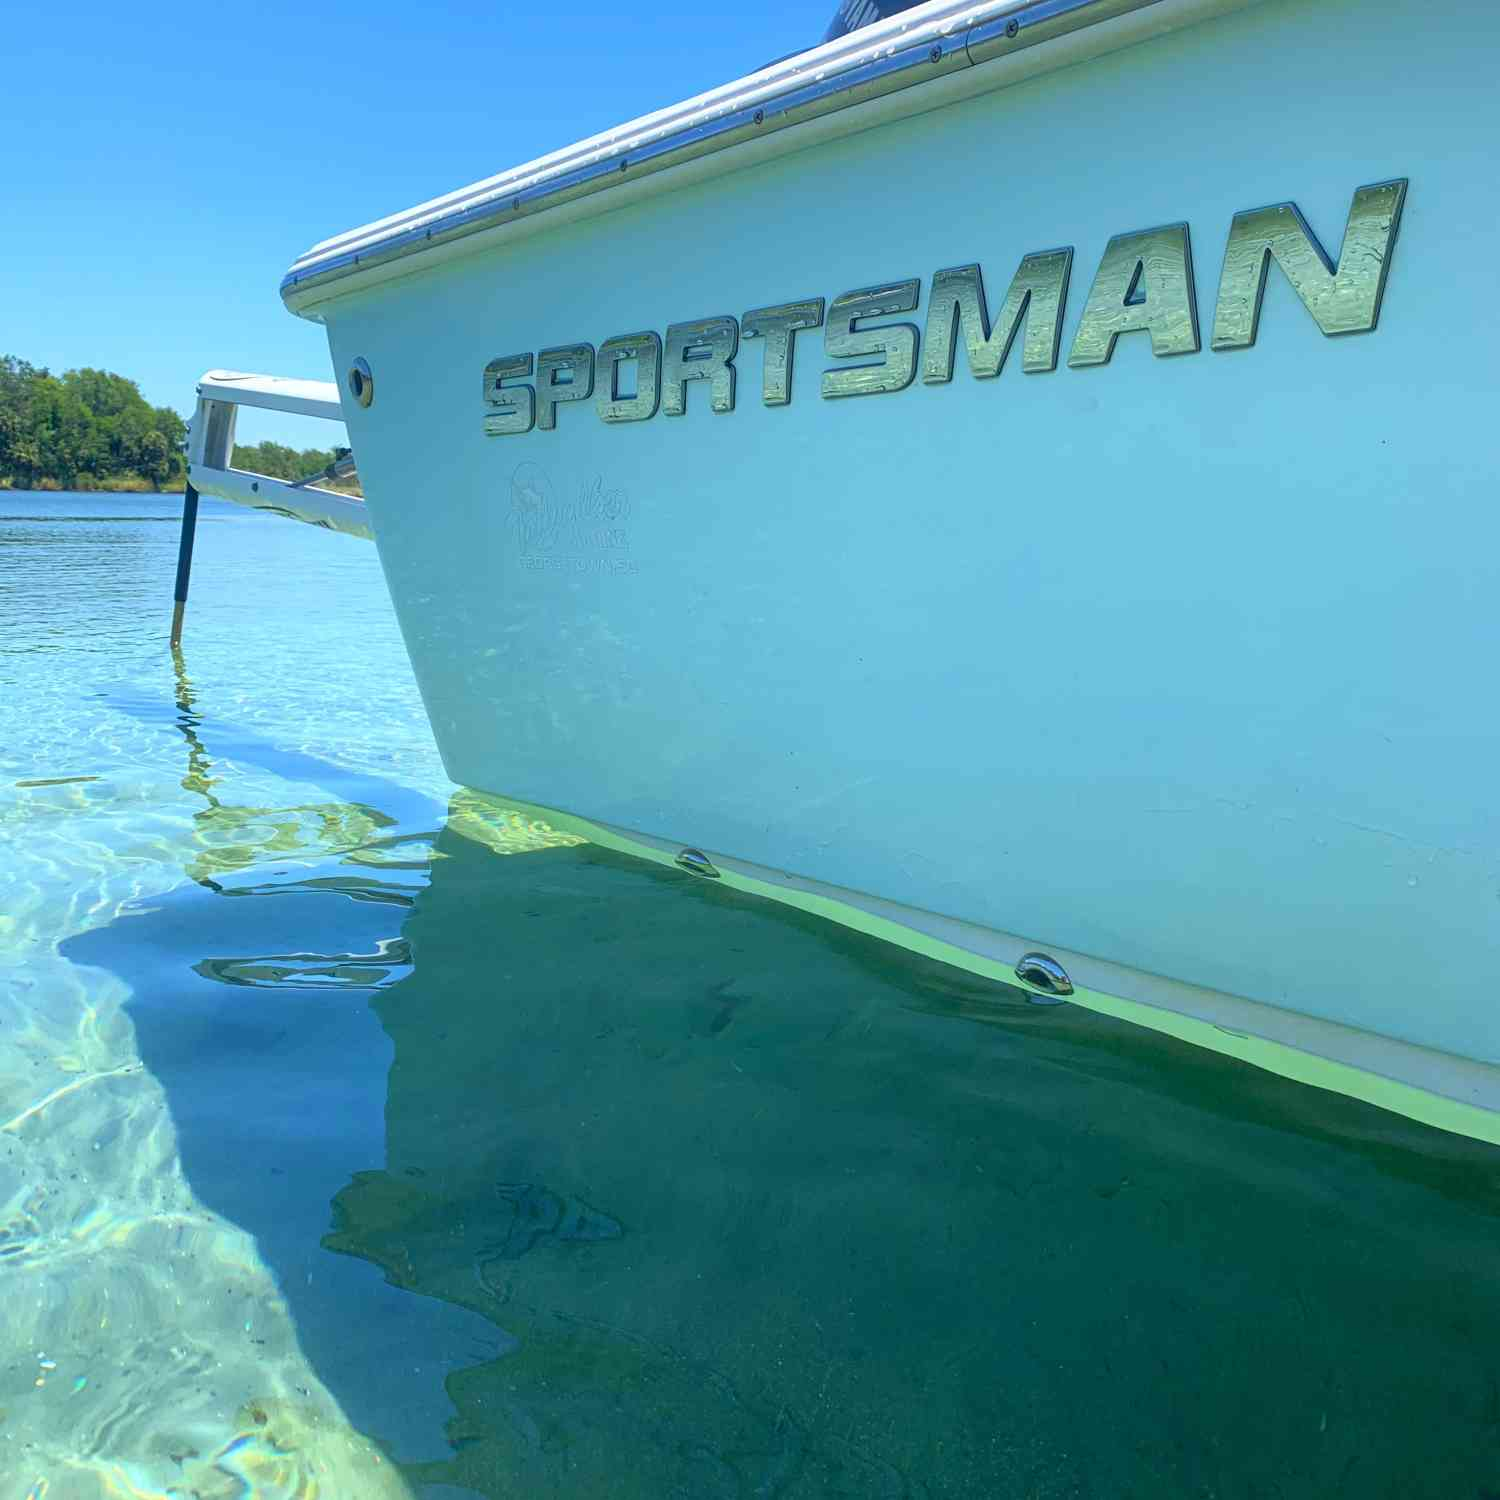 Title: Poles down at Silver Glenn Springs - On board their Sportsman Masters 207 Bay Boat - Location: Silver Glenn Springs. Participating in the Photo Contest #SportsmanFebruary2021